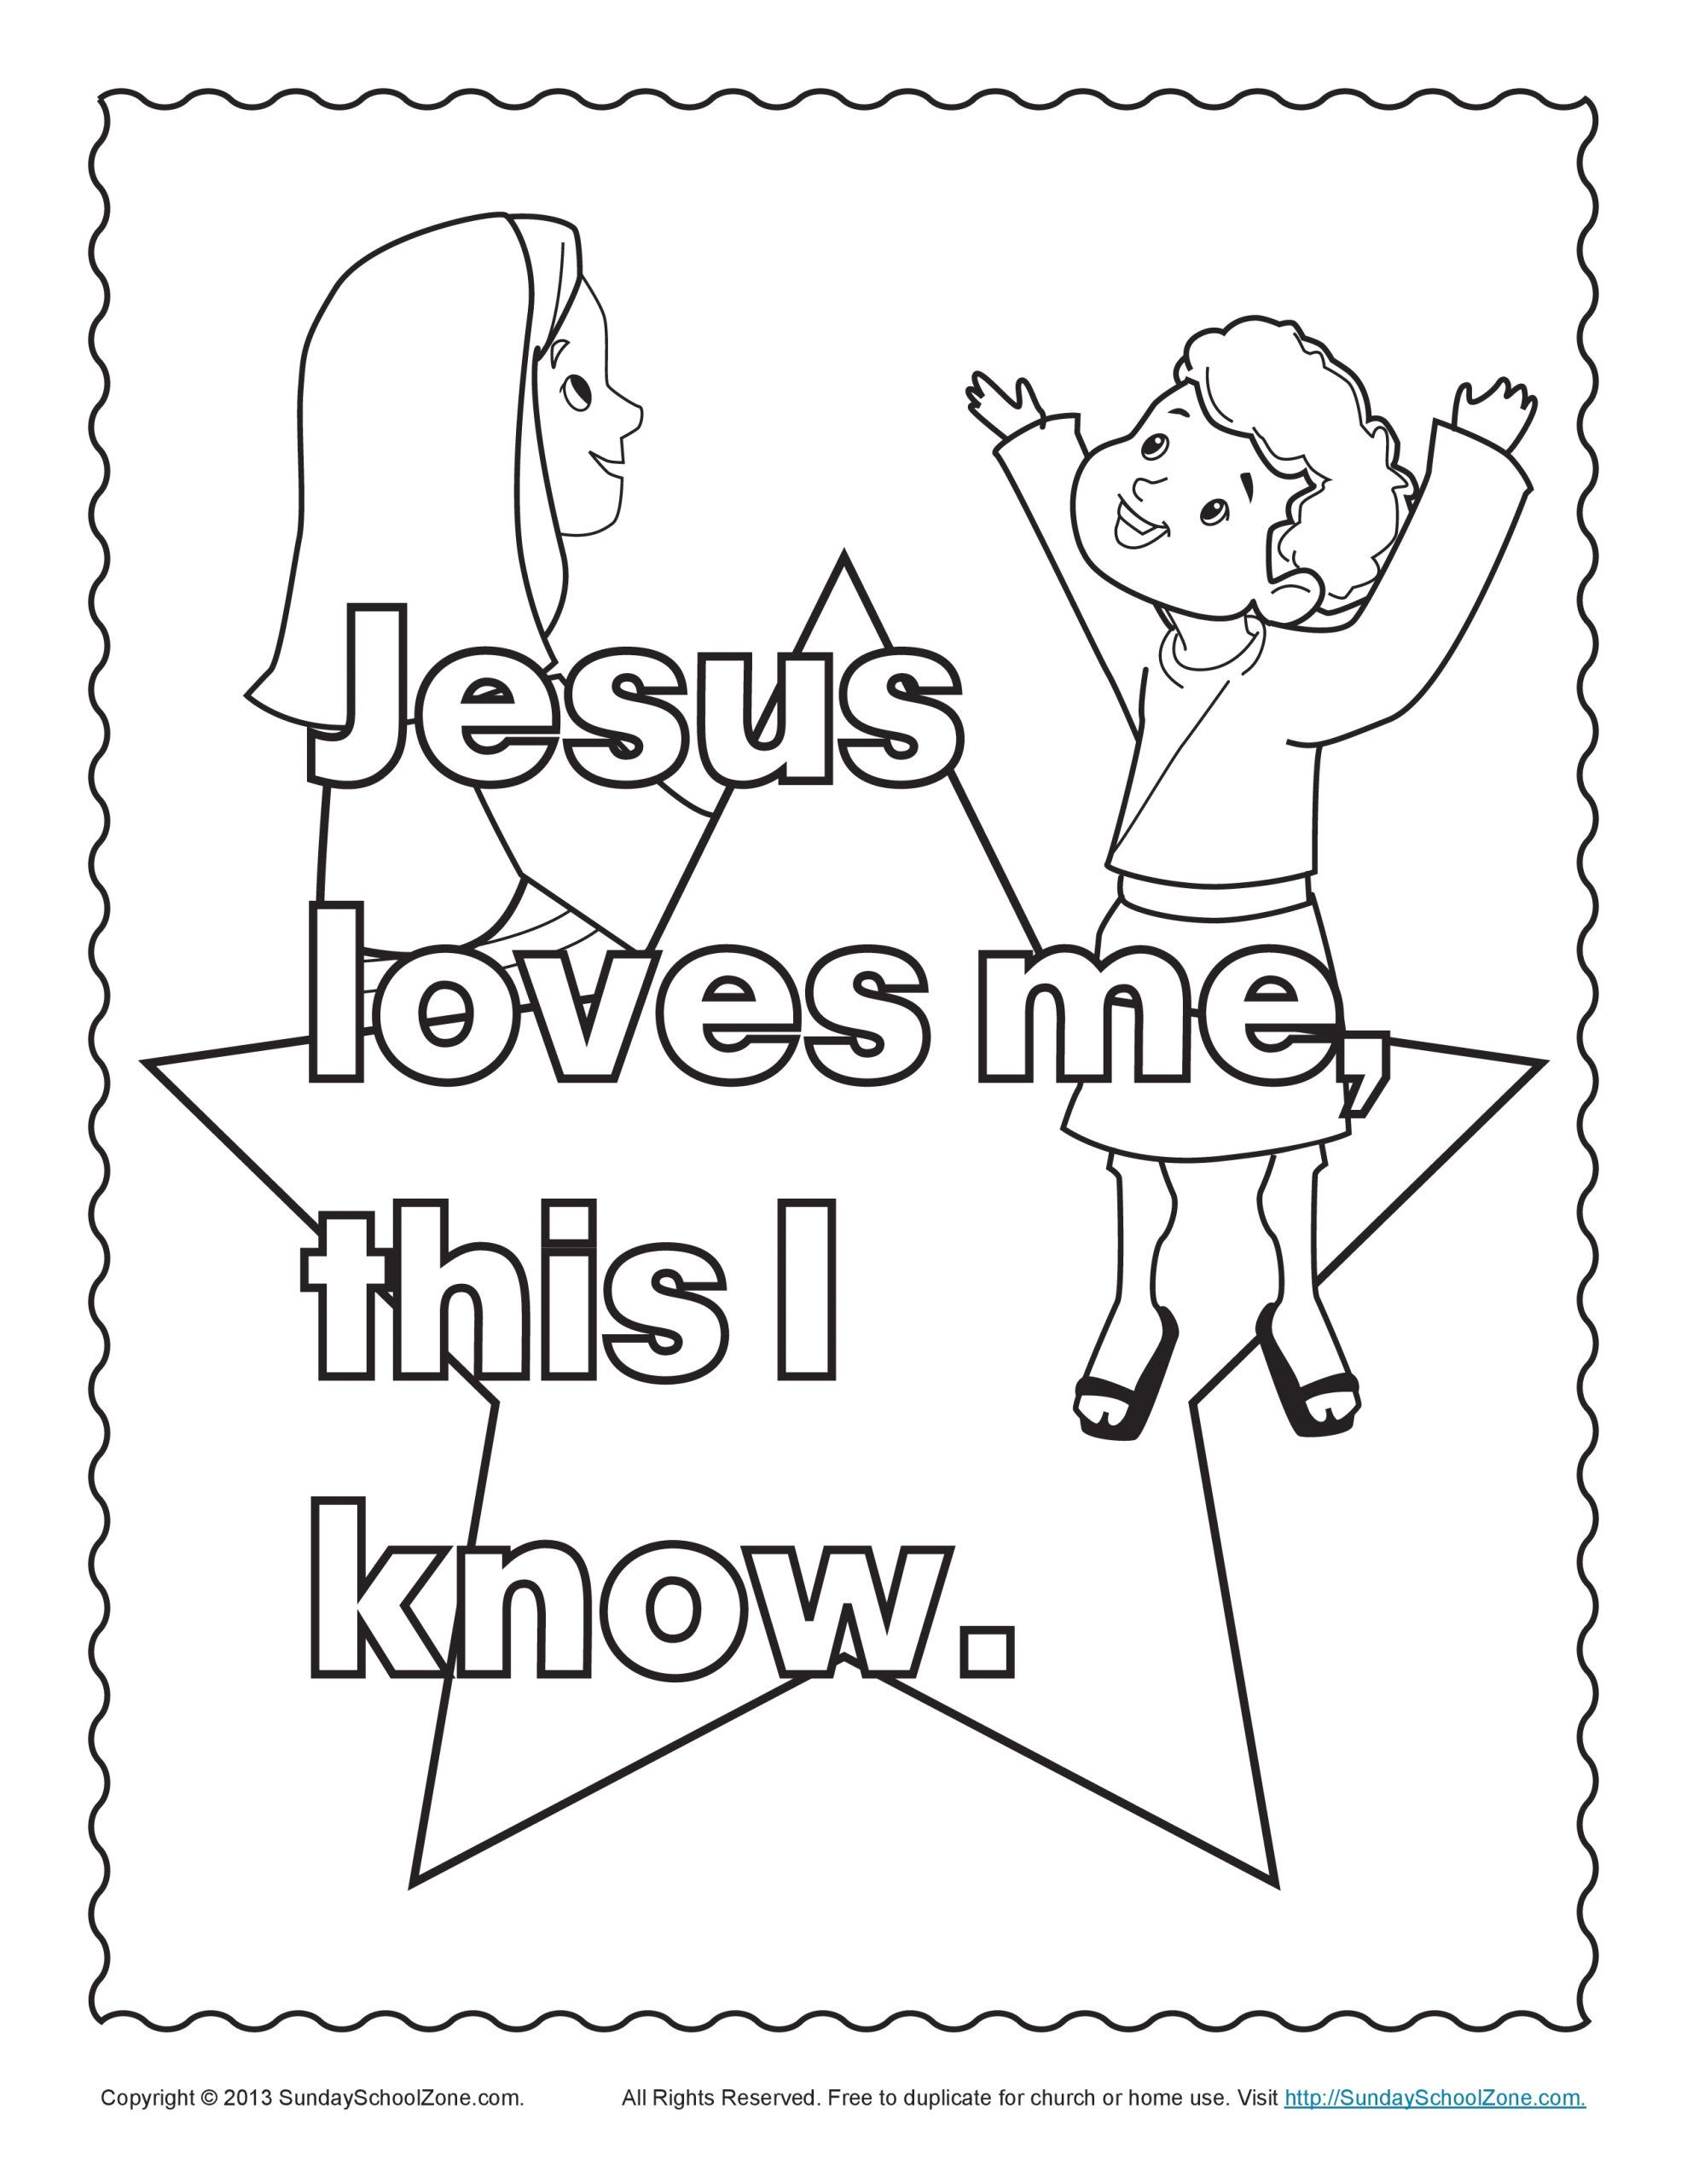 Free Printable Bible Coloring Pages for Preschoolers Free Printable Bible Coloring Pages for Preschoolers at